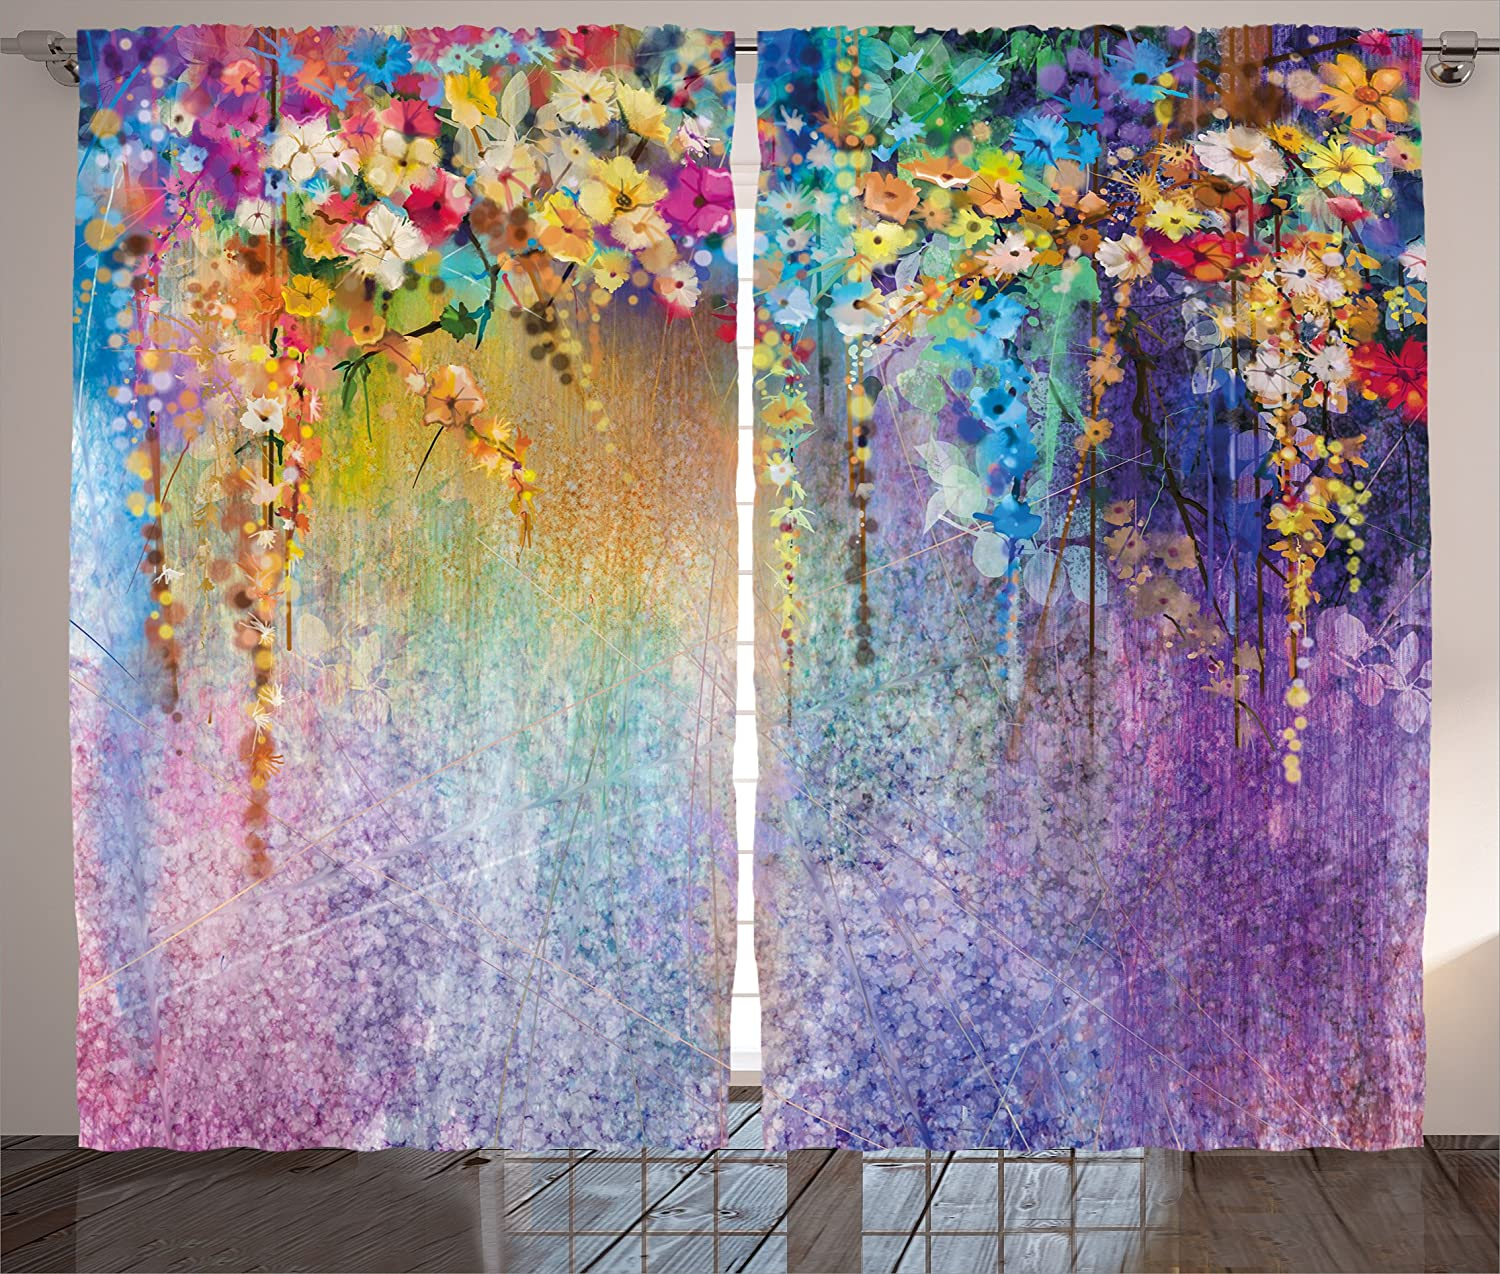 Ambesonne Watercolor Flower Home Decor Curtains, Abstract Herbs Weeds Blossoms Ivy Back with Florets Shrubs Design, Living Room Bedroom Window Drapes 2 Panel Set, 108 W X 63 L Inches, Multi